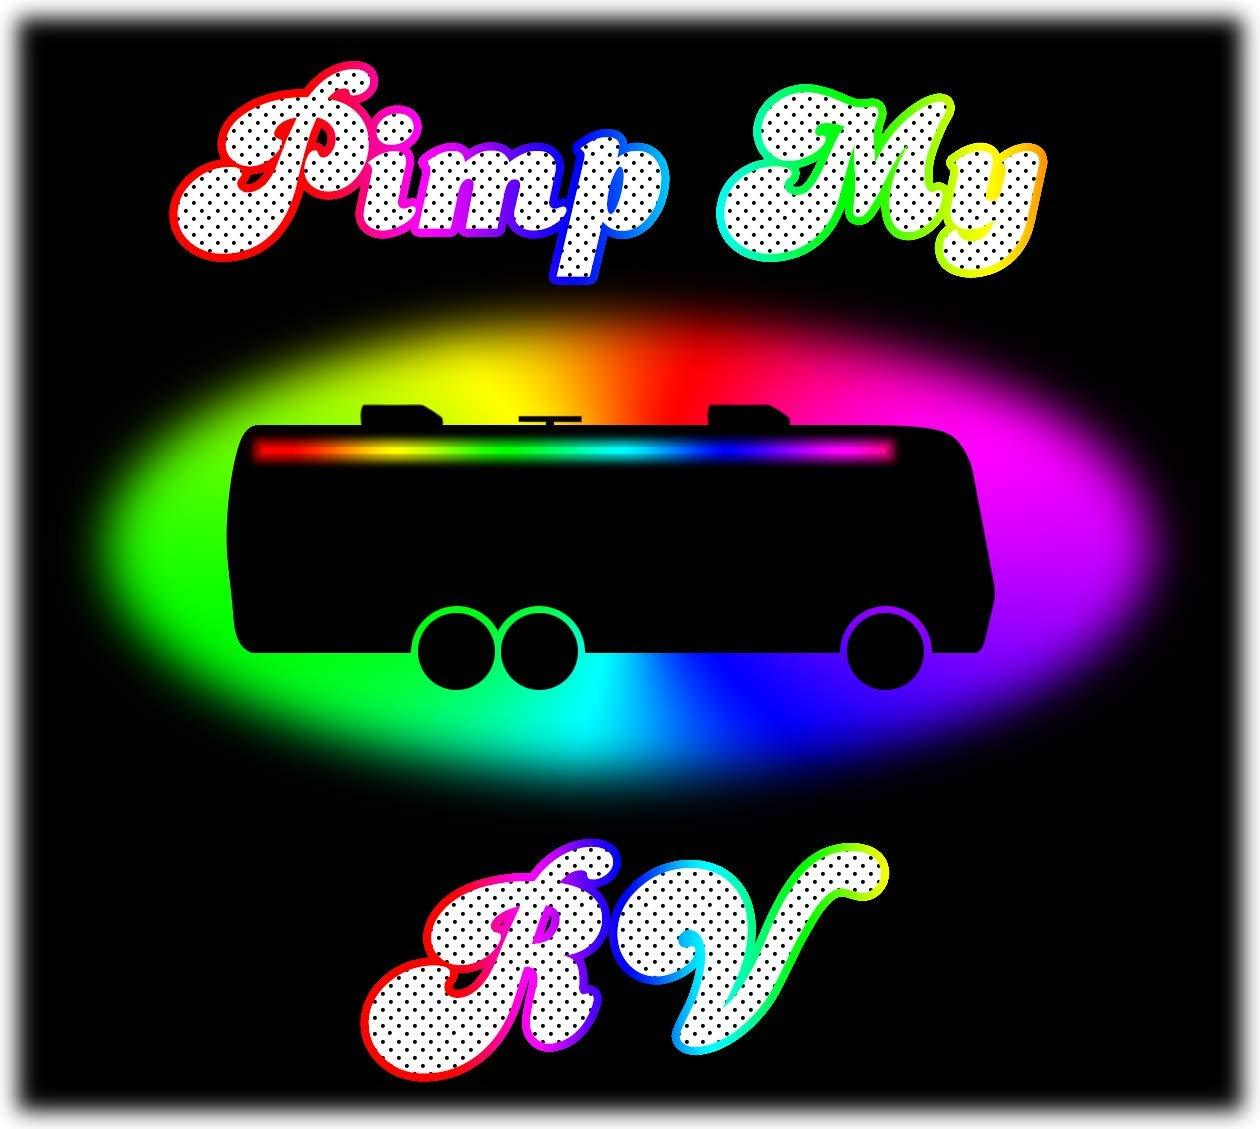 Green Blob Outdoors Pimp My RV DIY Multi-Color RGB Premium 15,000 Lumen LED Awning Lighting Kit SMD5630 IP68 Completely Waterproof RV Motorhome Travel Trailer Camper with mounting Channels RV Light Kits Green Blob Outdoors